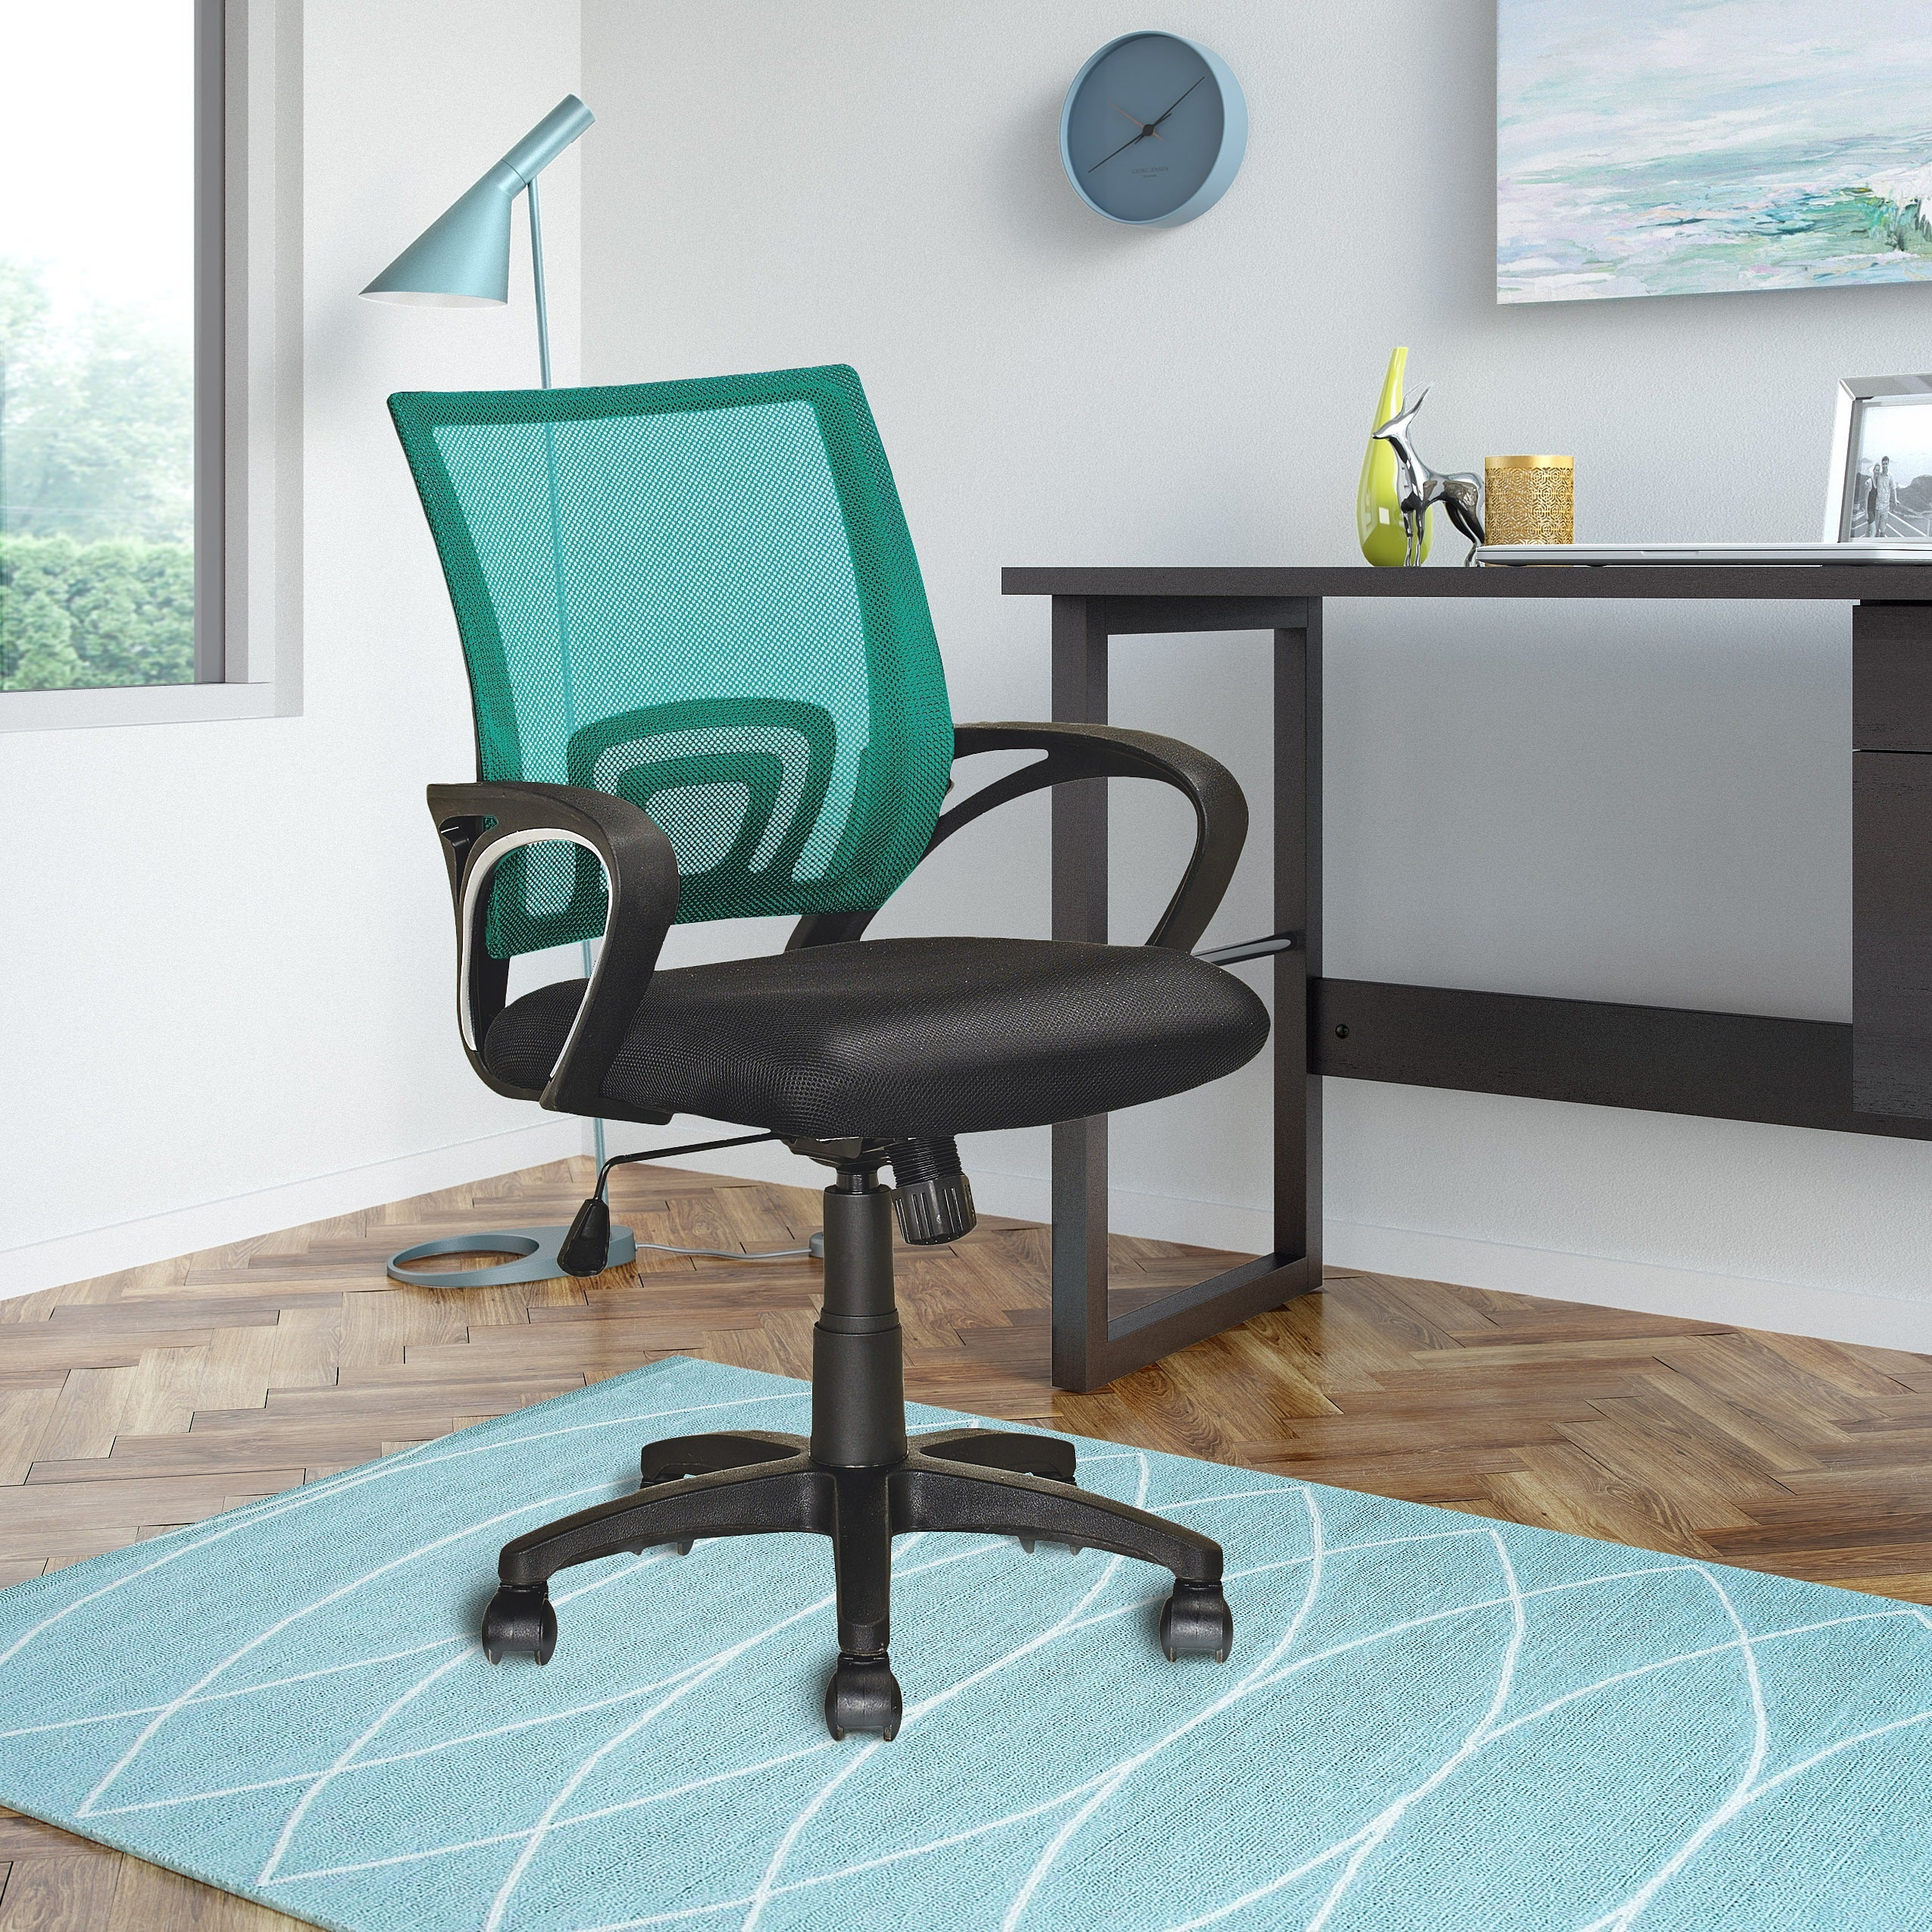 ergonomic desk price modern office intended merax high unico white back swivel premium fice size new regarding chair jules zuo for guest home com child antique pu of blue magnifier wheelchair chairs contemporary computer ikea zm with and amazon wheels fur item no dianahsplace full black s